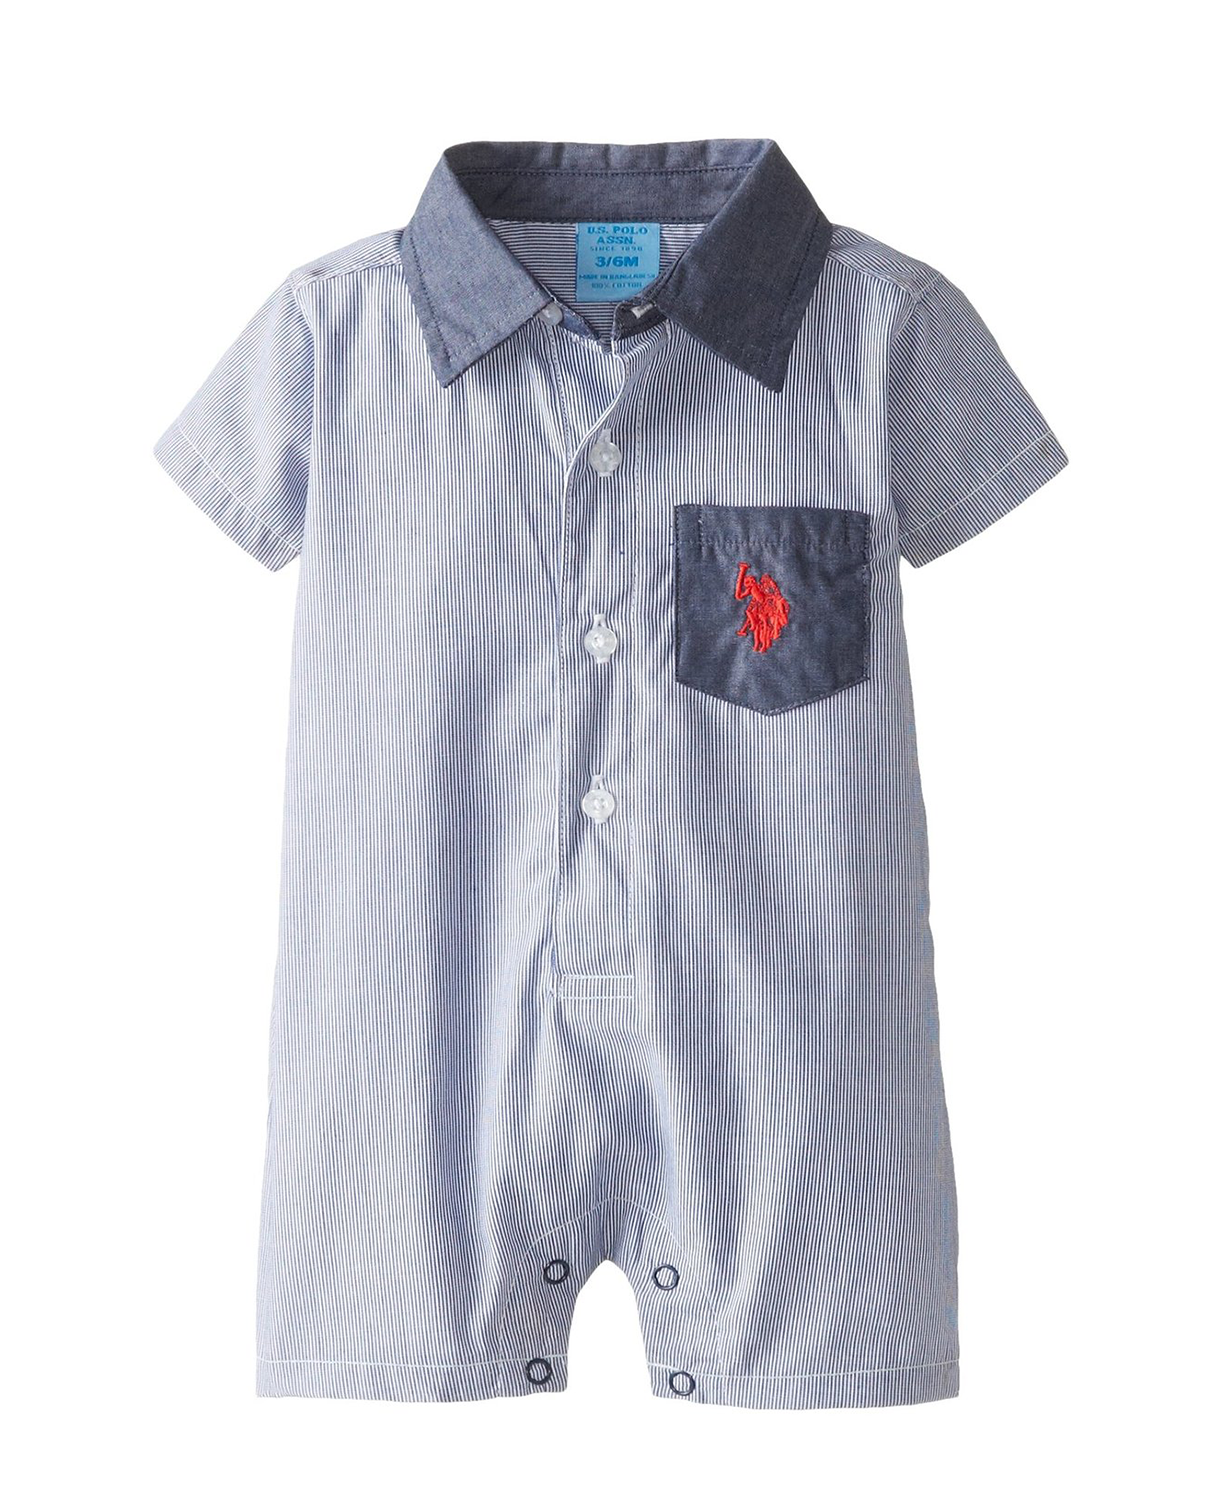 ee7d742a82c5 Cute U.S. Polo Assn. Baby-Boys Striped Chambray Baby Romper - Baby ...